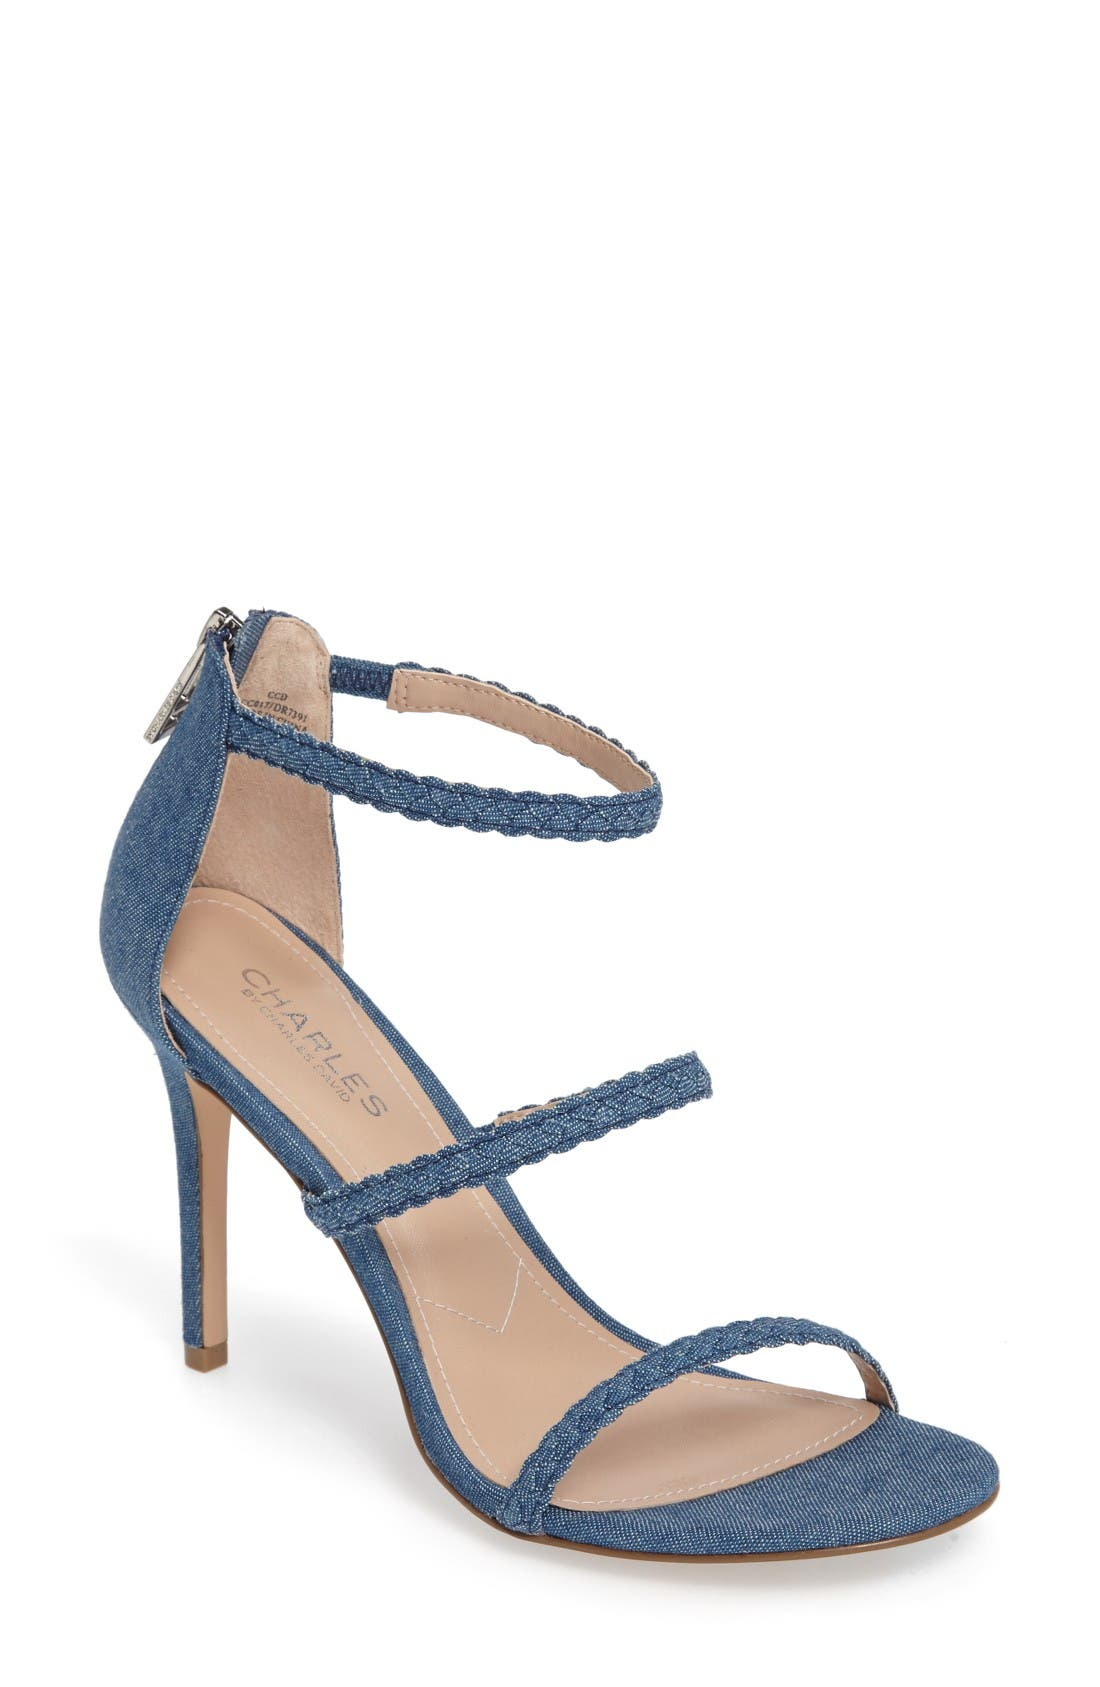 Main Image - Charles by Charles David Ria Strappy Sandal (Women)